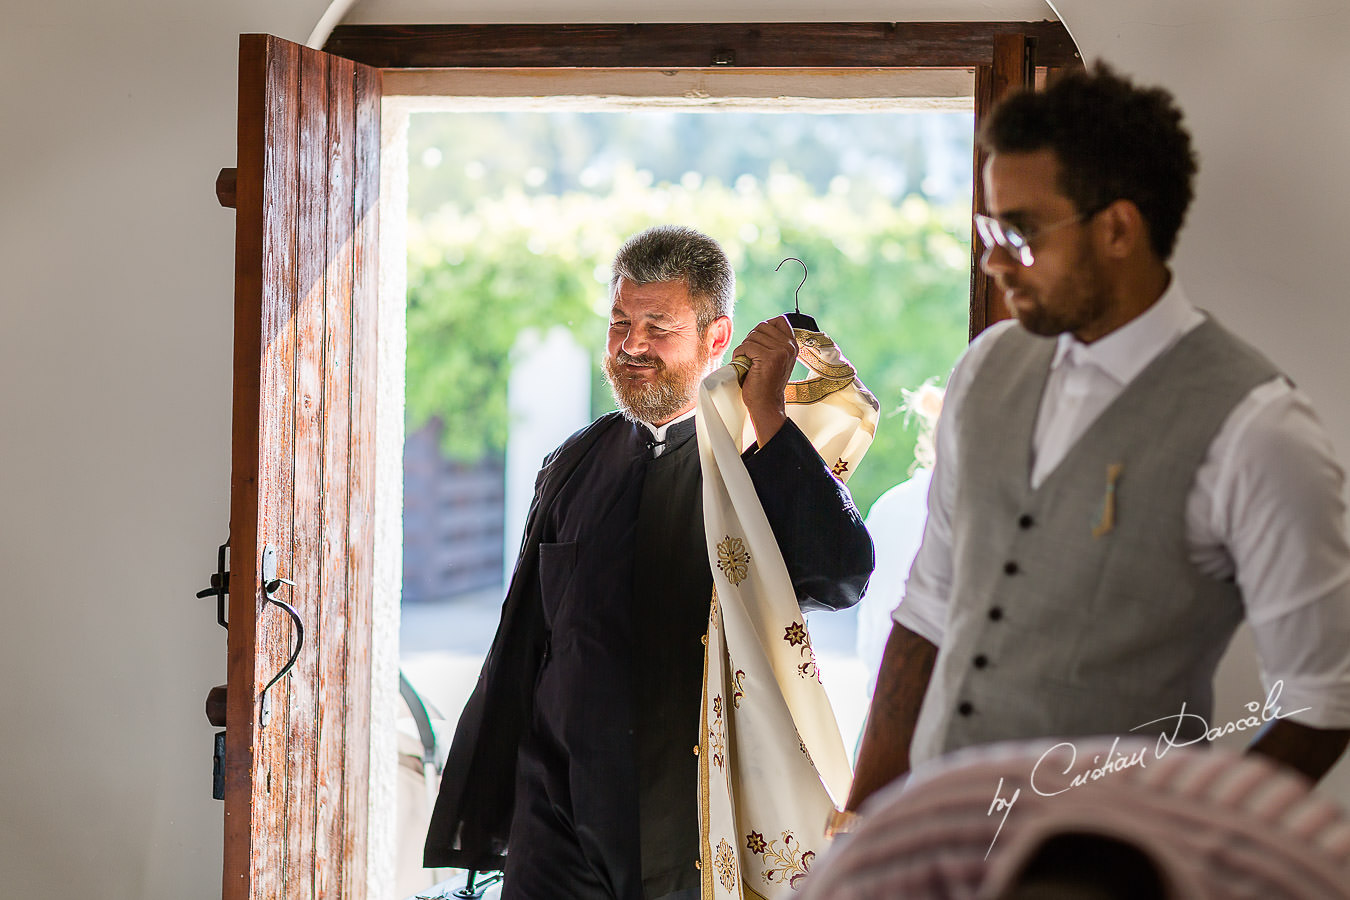 The priest arriving for a Christening the beautiful Anassa Hotel photographed by Cyprus Photographer Cristian Dascalu.